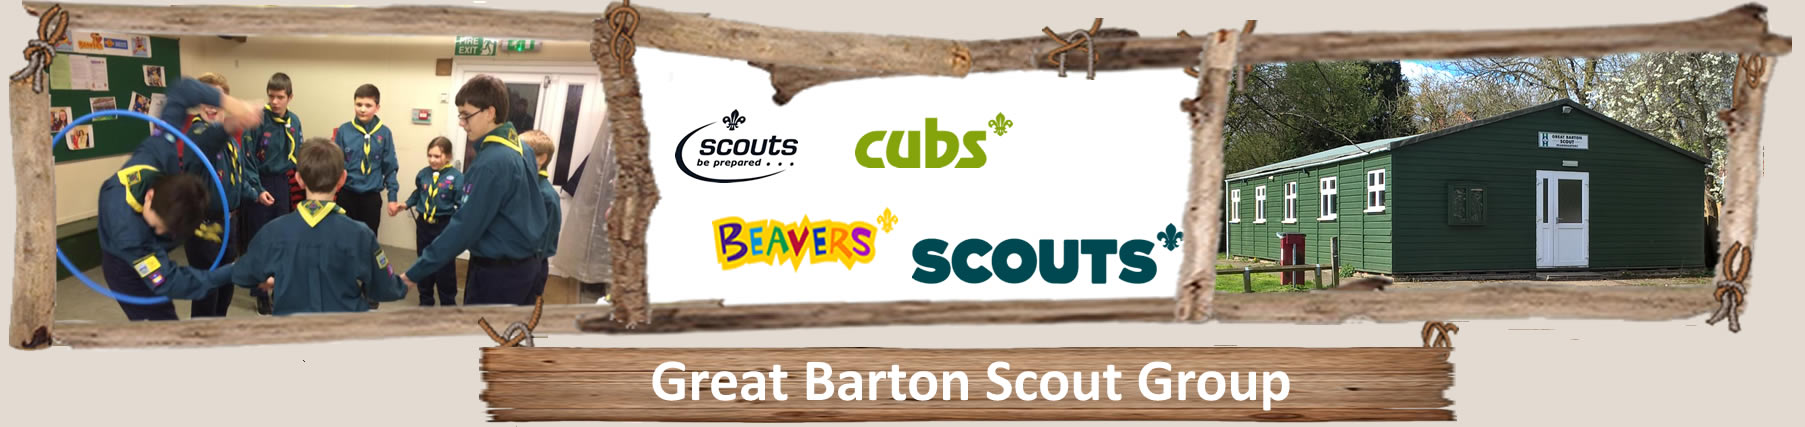 Great Barton Scouts Header